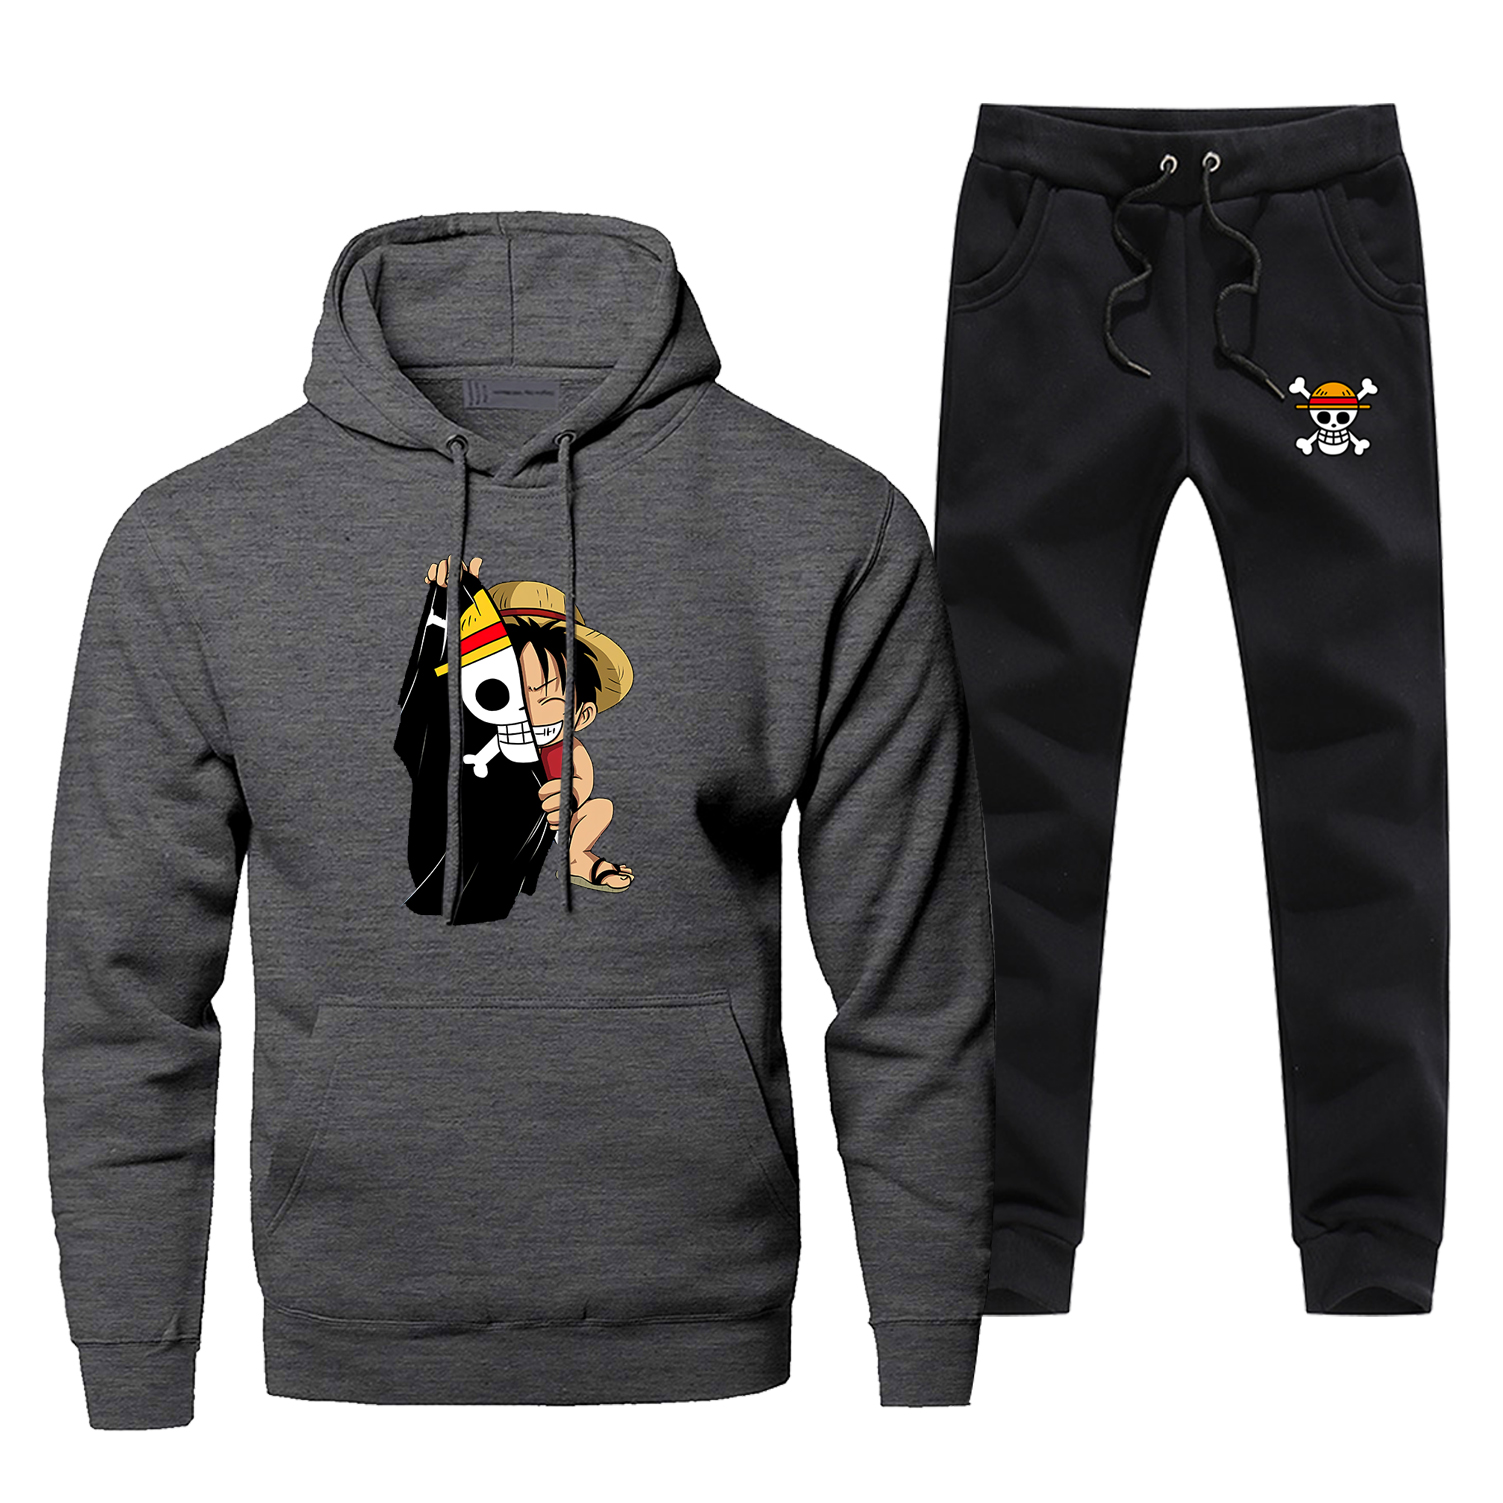 One Piece Hoodies Pants Men Set Anime Luffy The Straw Hat Pirates Sweatshirt Sweatpants Sportswear Autumn Sports 2 PCS Tracksuit